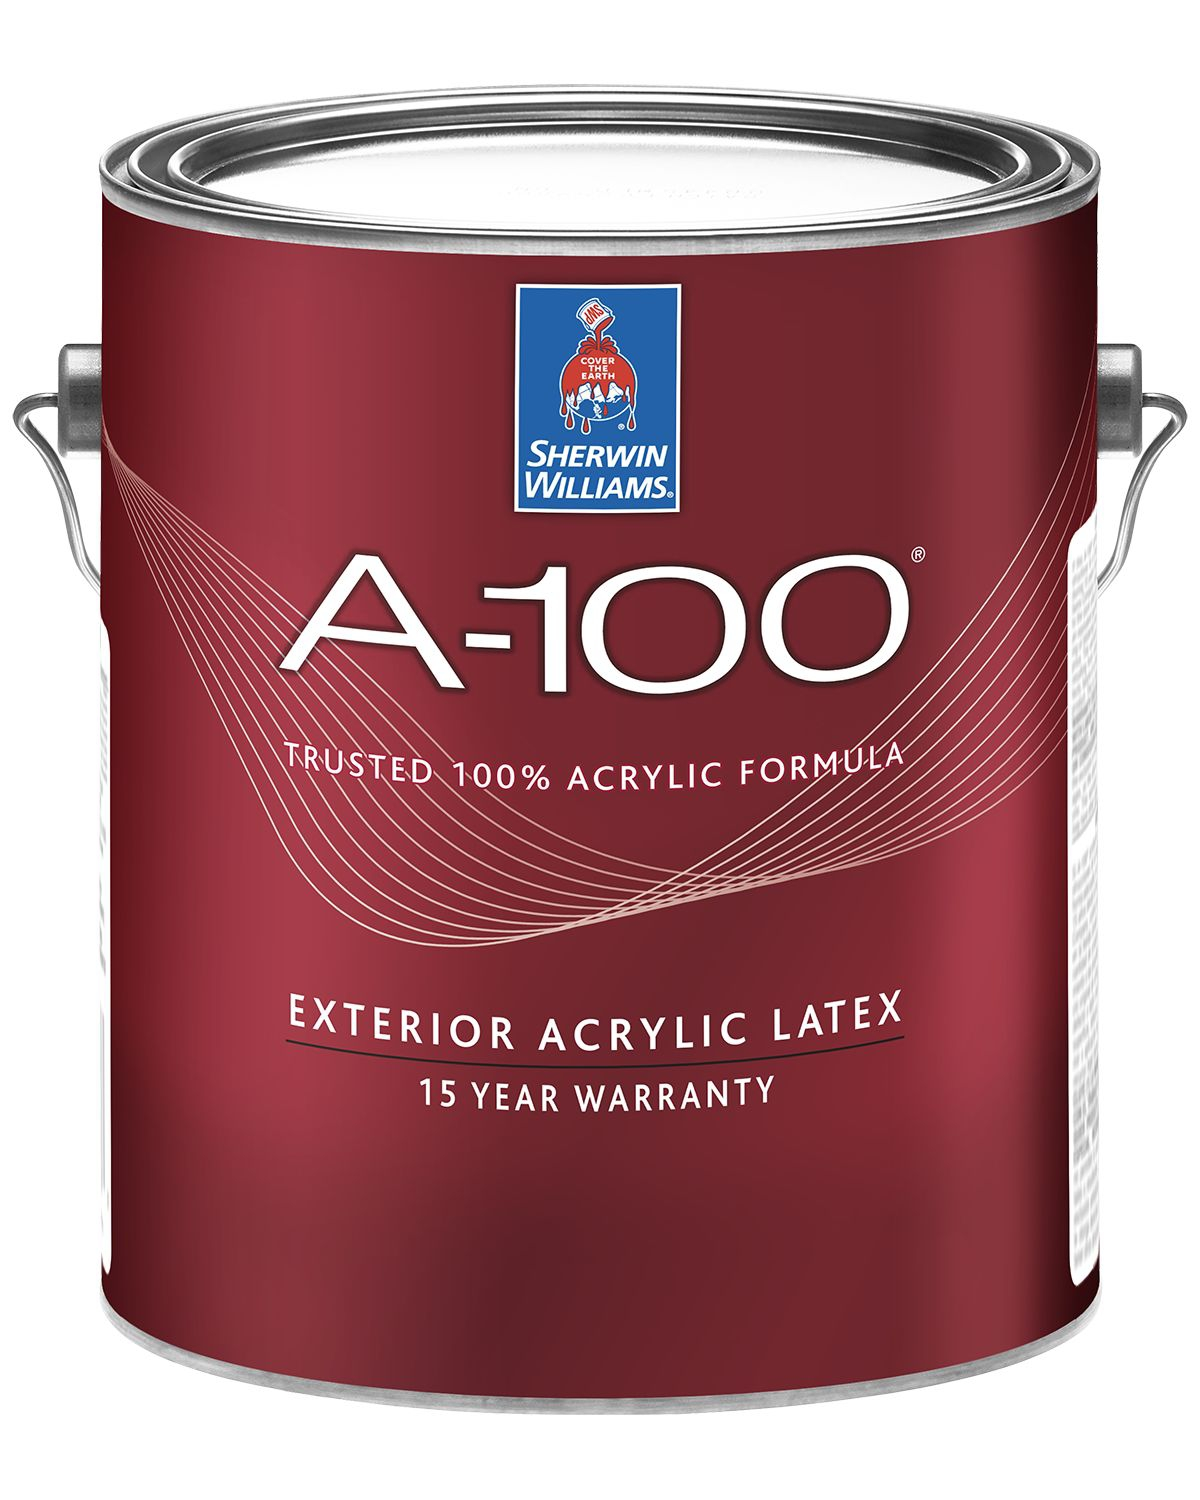 A 100 Exterior Acrylic Latex Paint Sherwin Williams